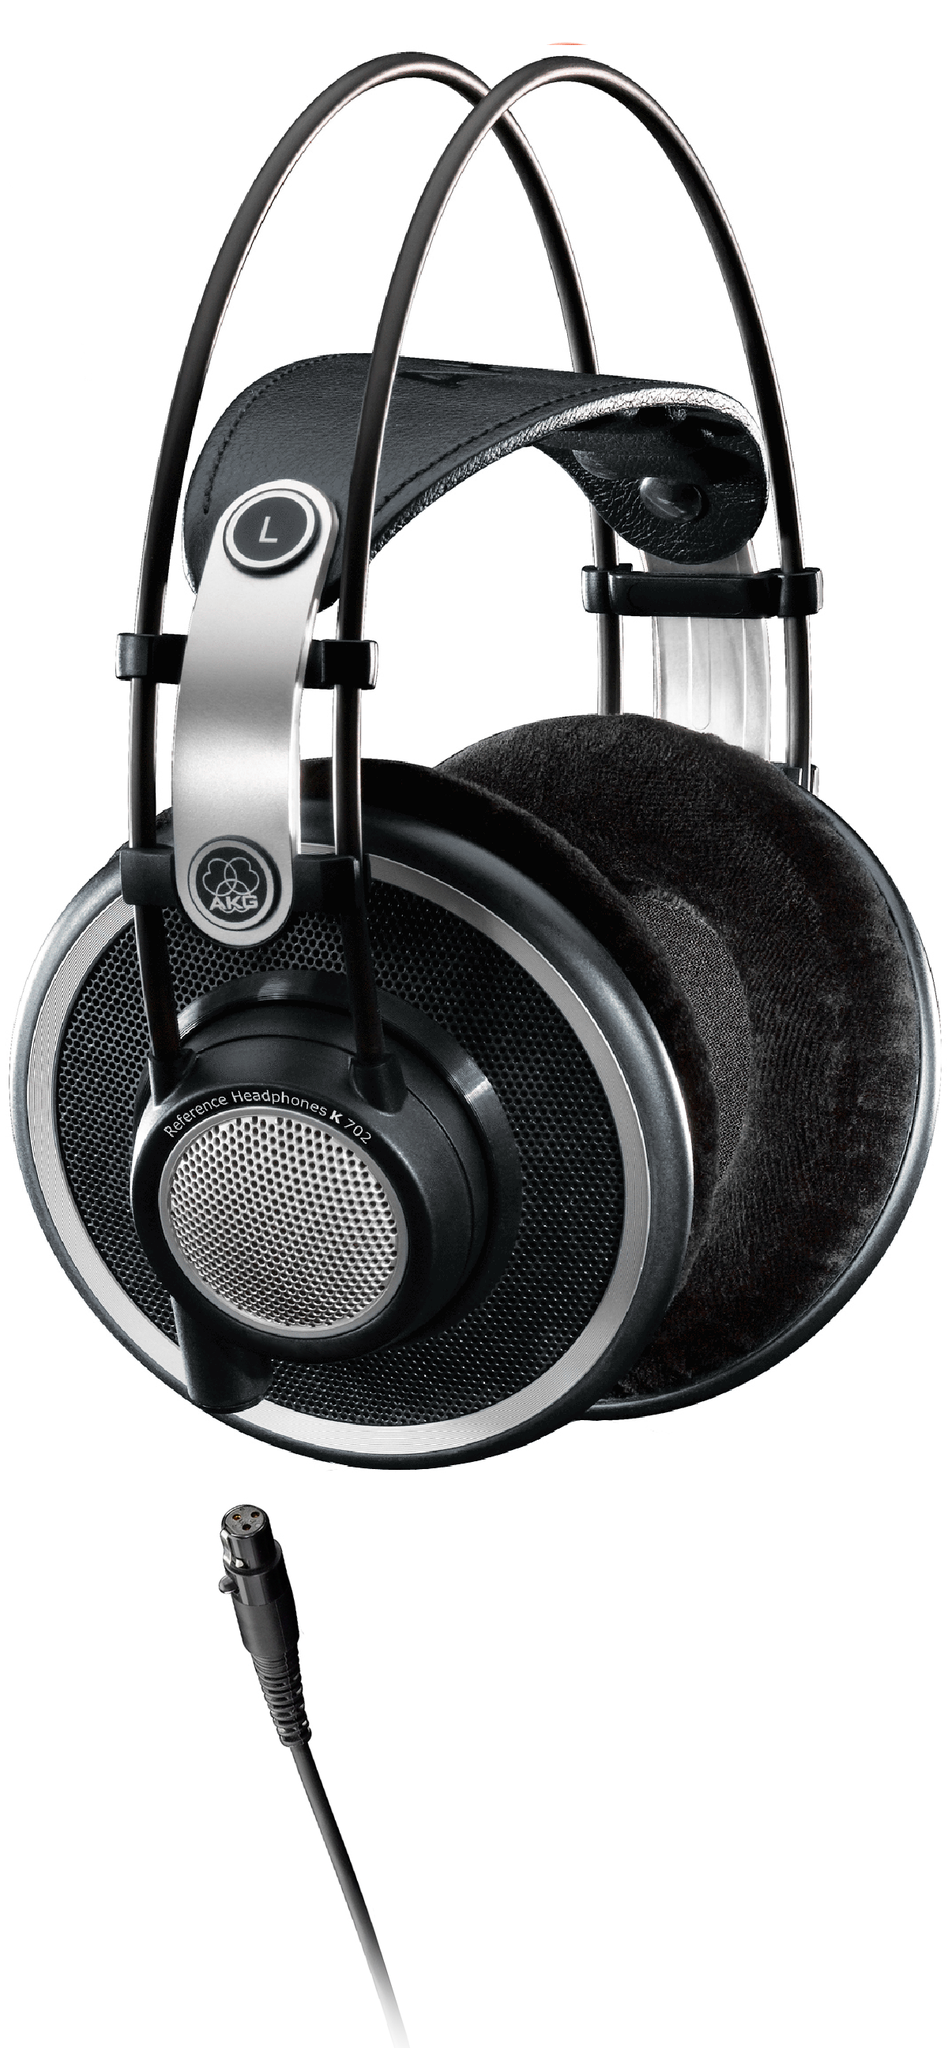 98d59b59564 AKG K702 Reference Studio Headphone - Jaben Online